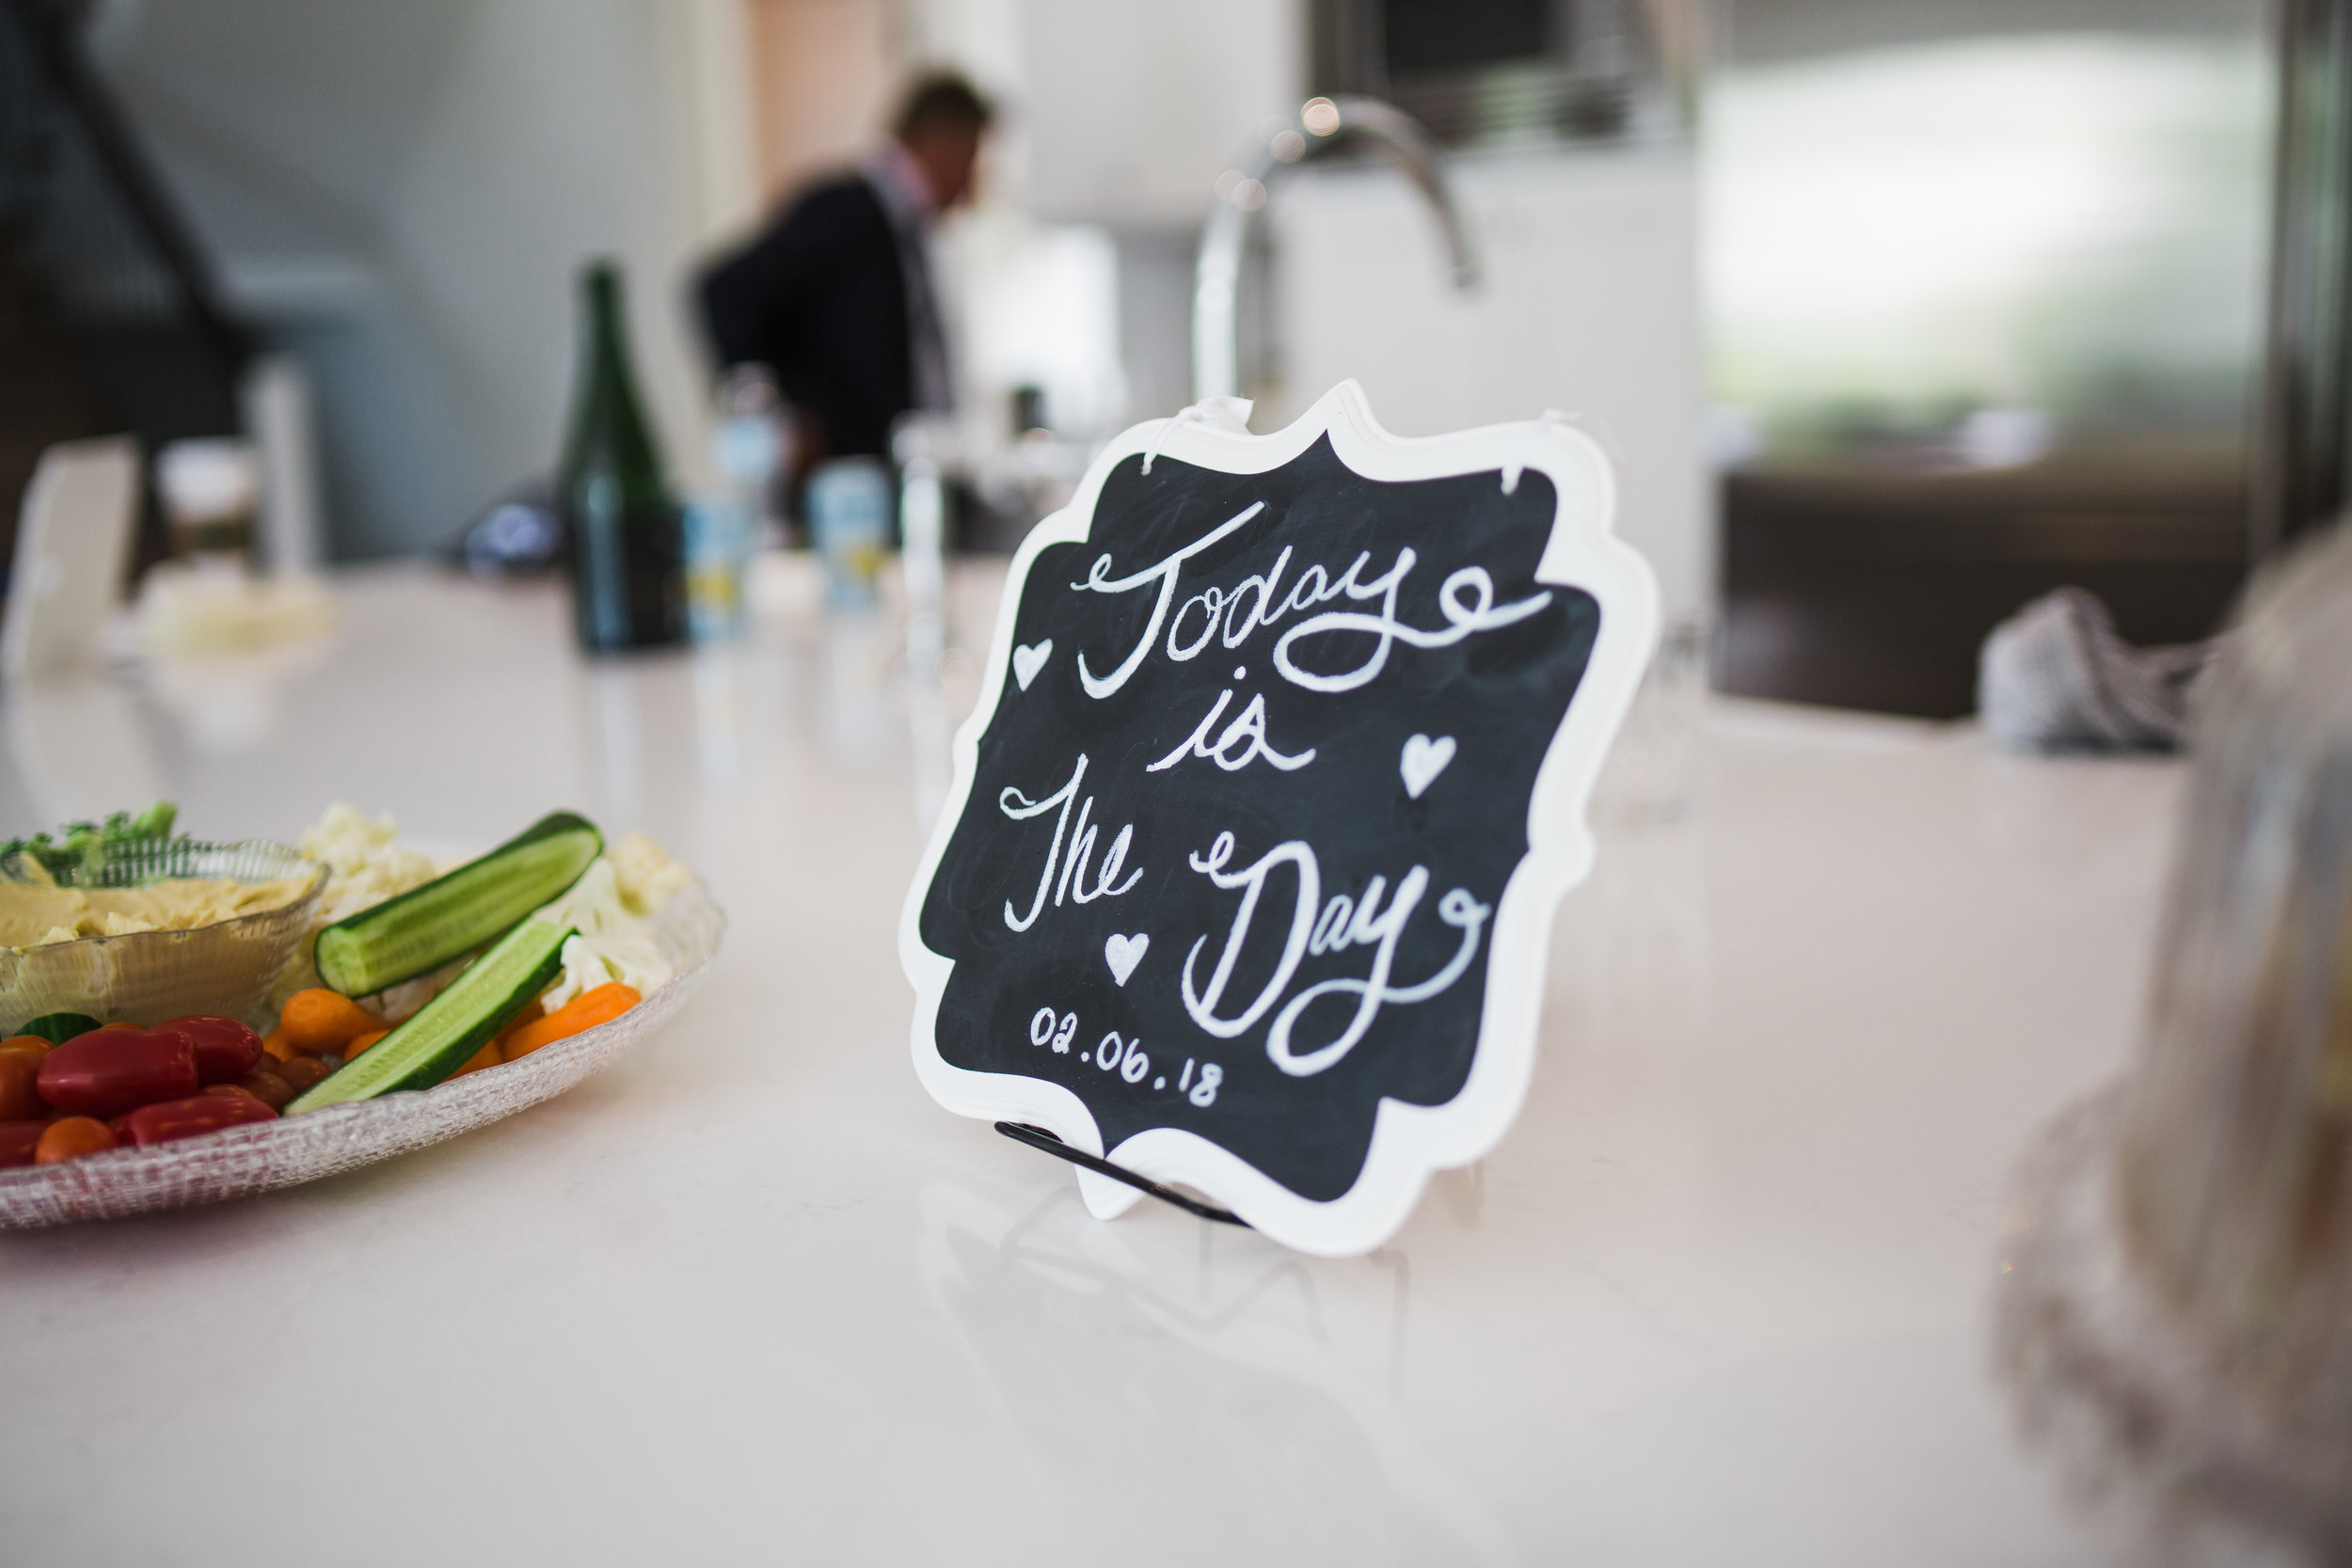 today is the day wedding sign on kitchen sink before outdoor summer wedding at Kwomais Point Park in Ocean Park Surrey British Columbia by Mimsical Photography who is a wedding photographer from Langley, BC that has a candid and documentary fun style.